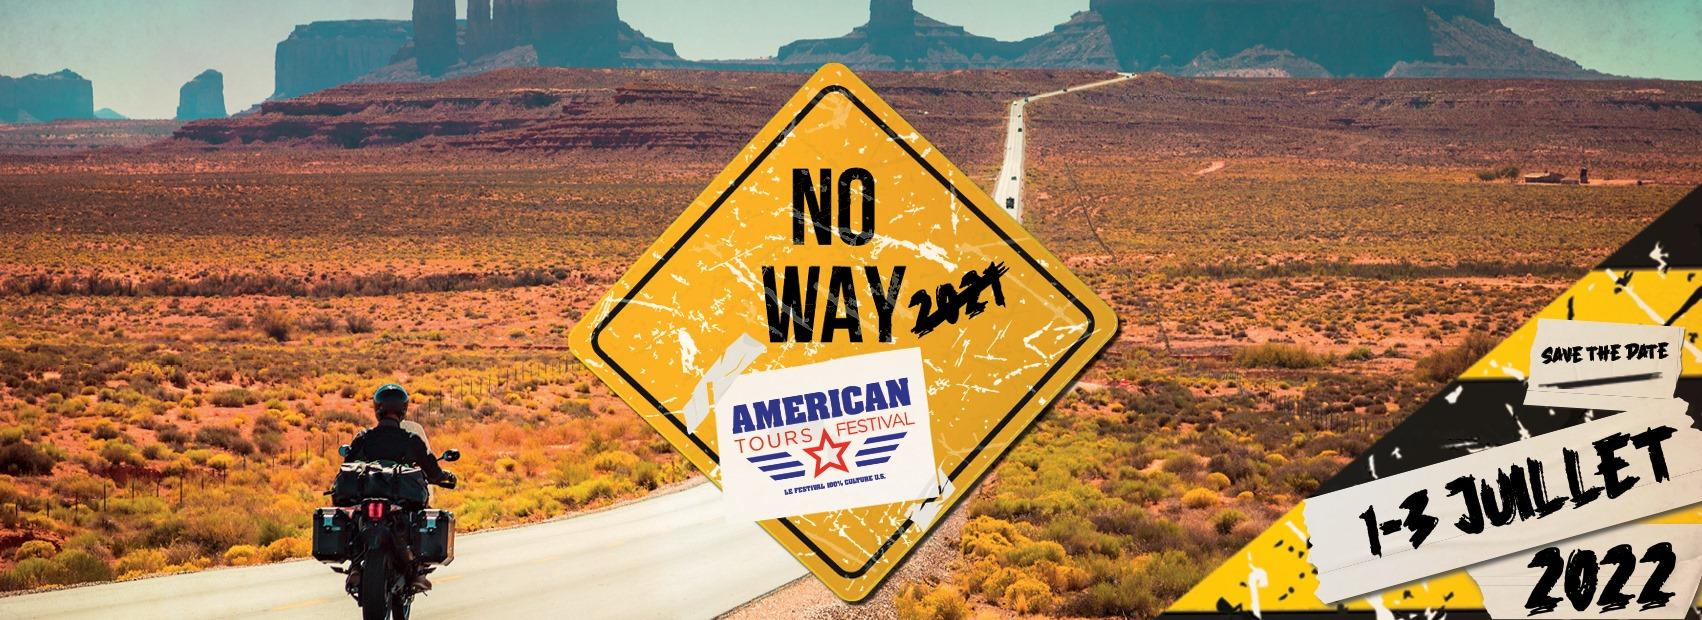 American tours 2022